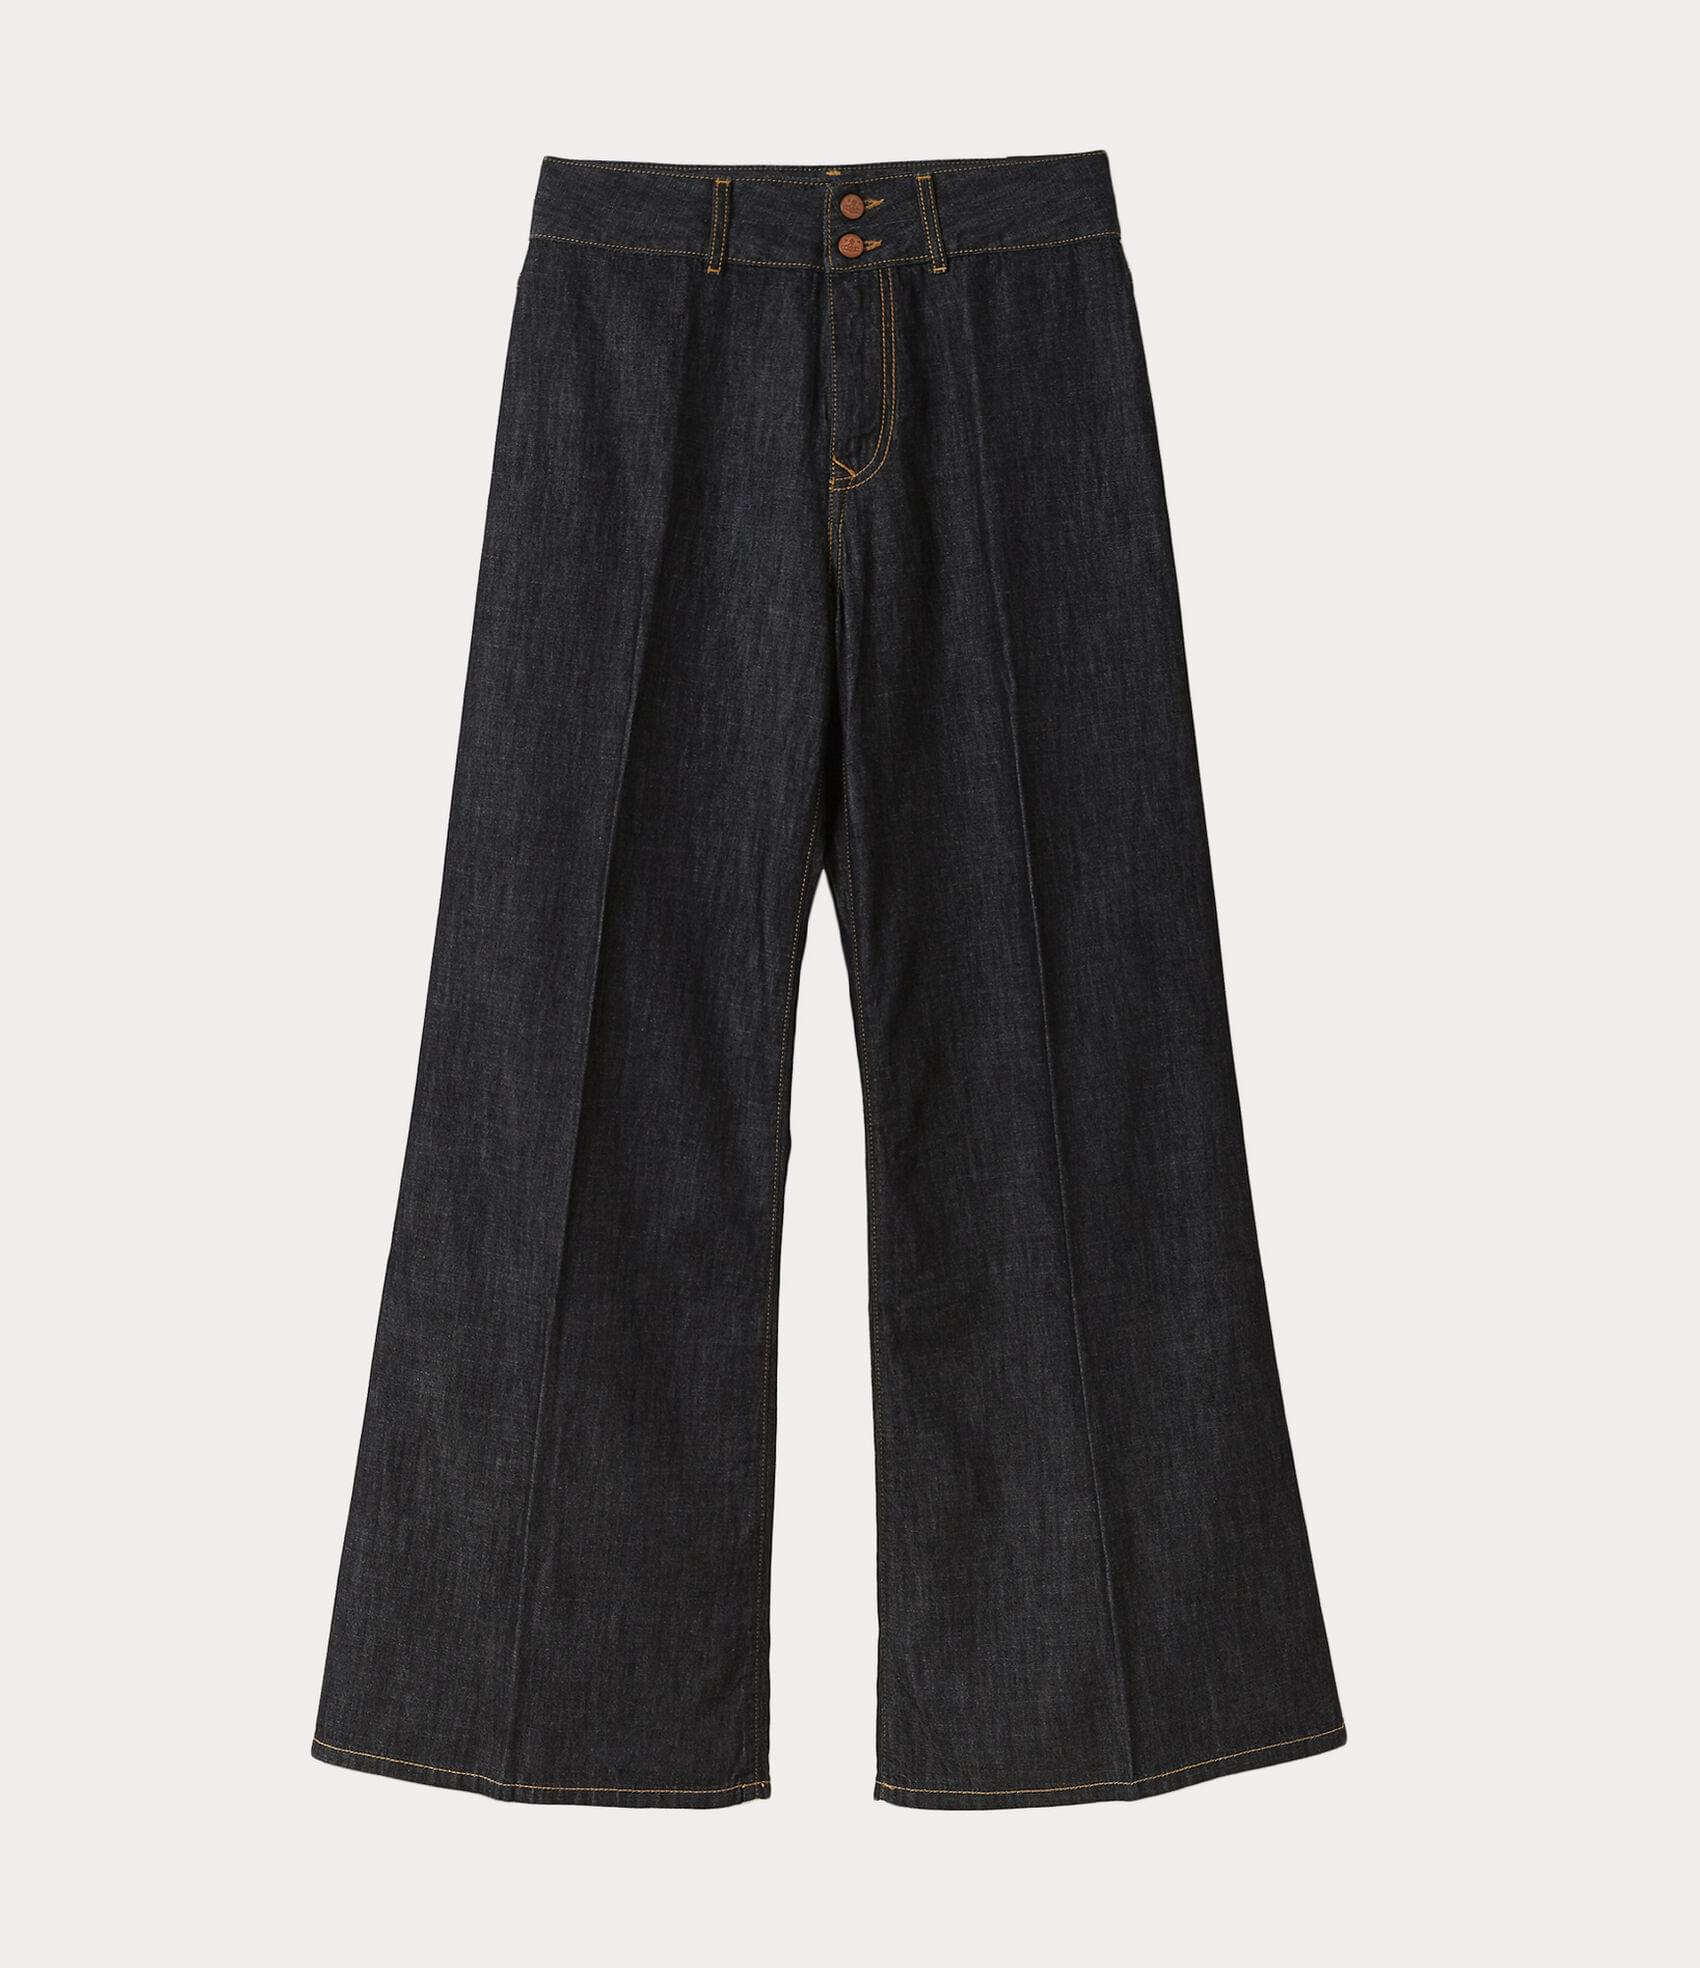 Vivienne Westwood NEW APOLLO JEANS